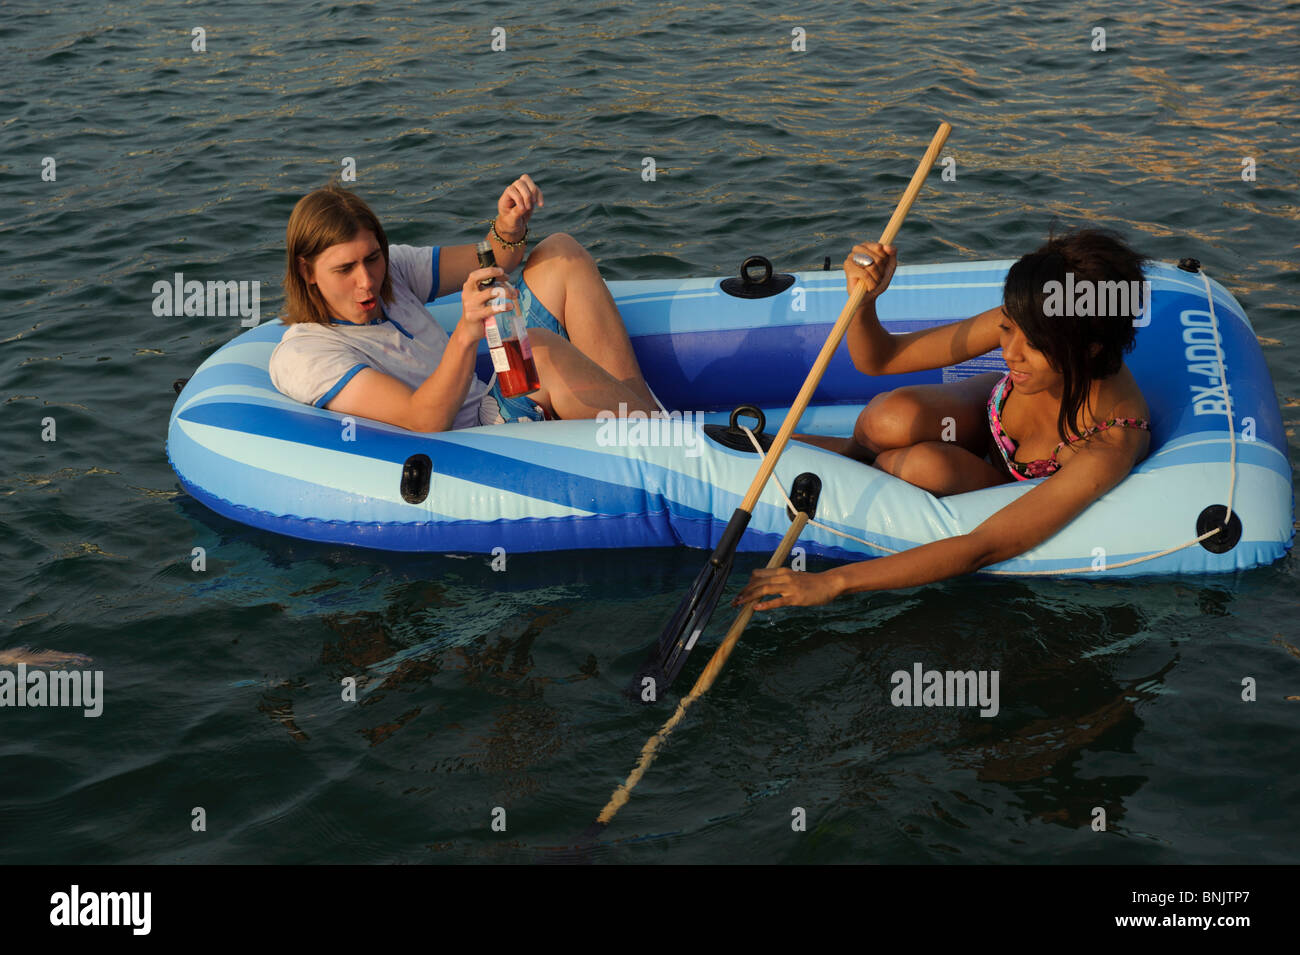 Two Young people in an inflatable dinghy drinking a bottle of wine, Aberystwyth Wales UK - Stock Image